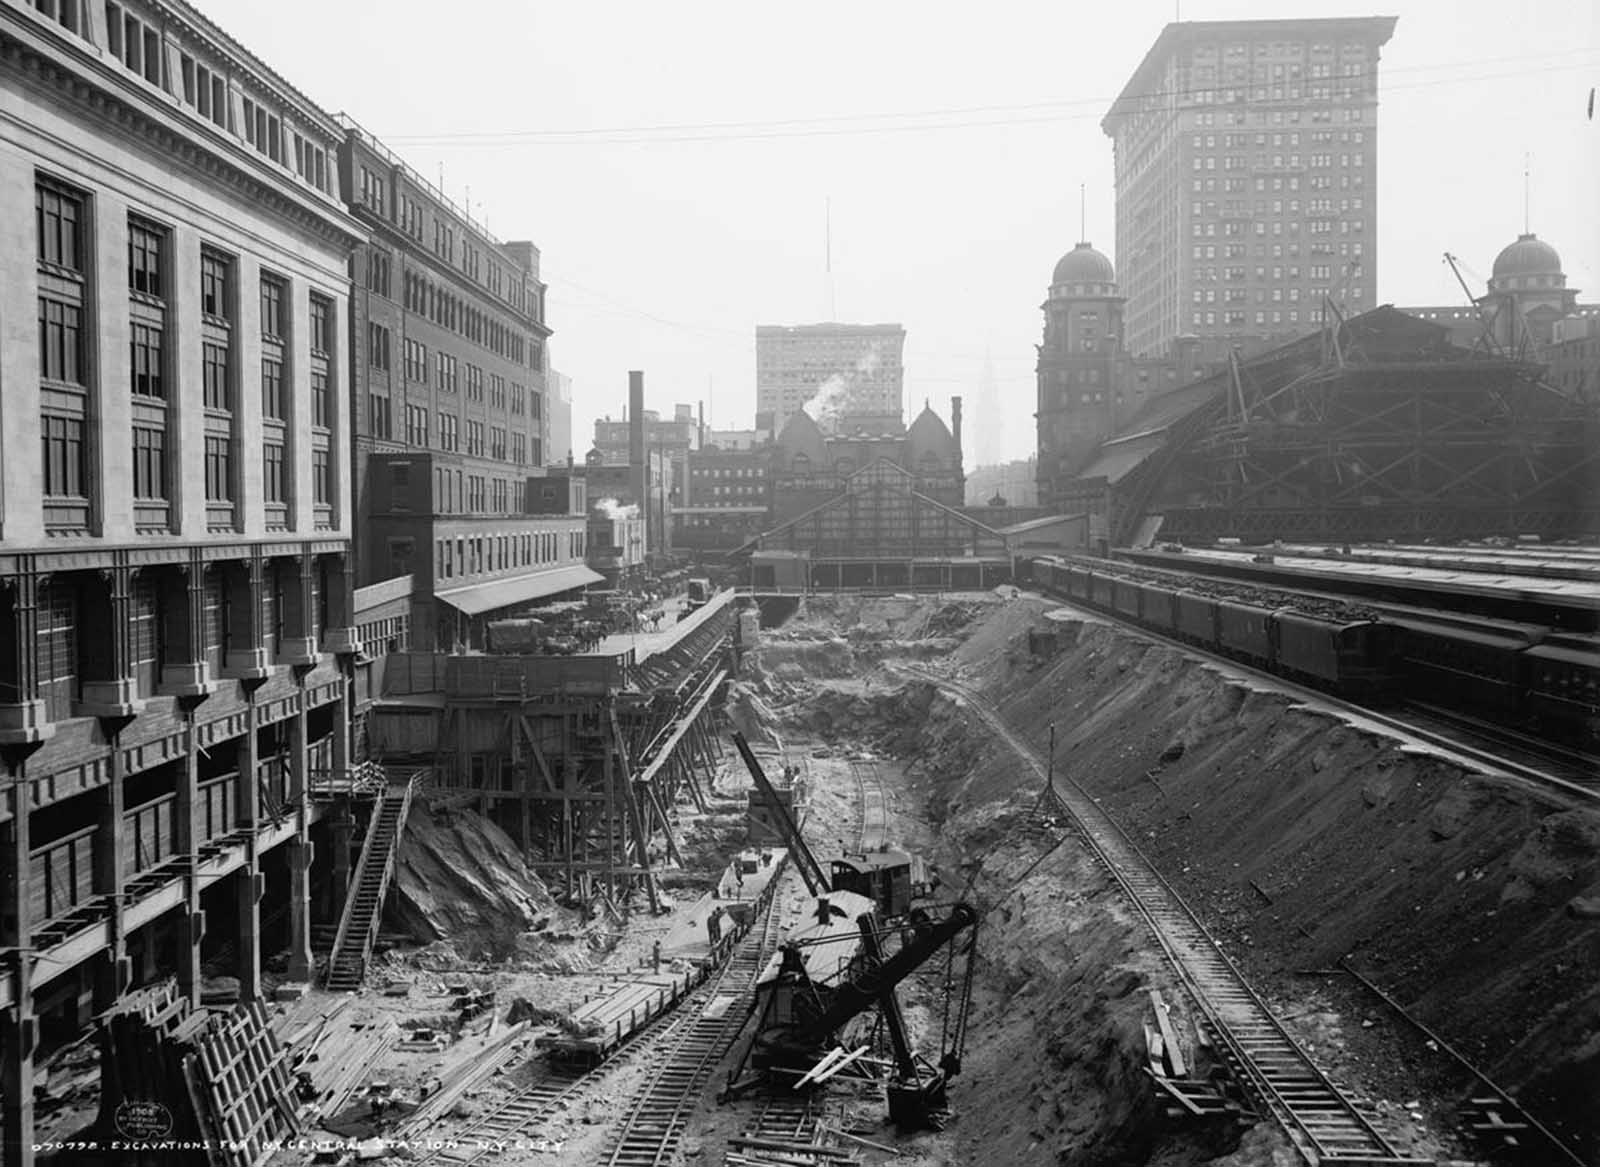 Excavation work at the site of Grand Central Station in New York City, in 1908.